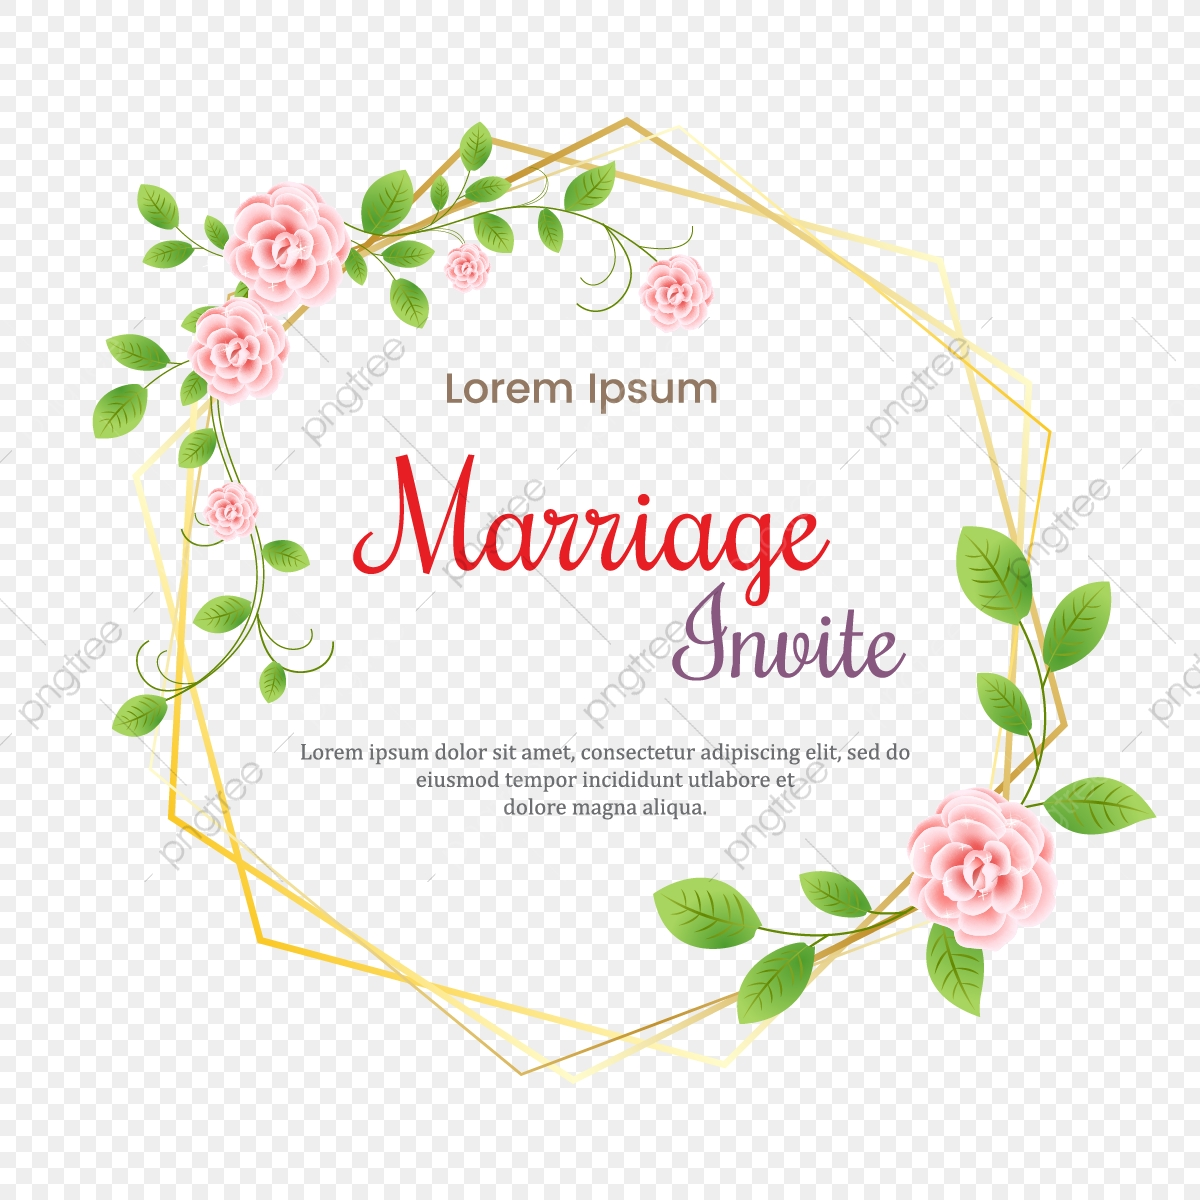 https fr pngtree com freepng decorative greeting card or invitation of flower leaves wedding ornament concept floral poster and invite 3728692 html